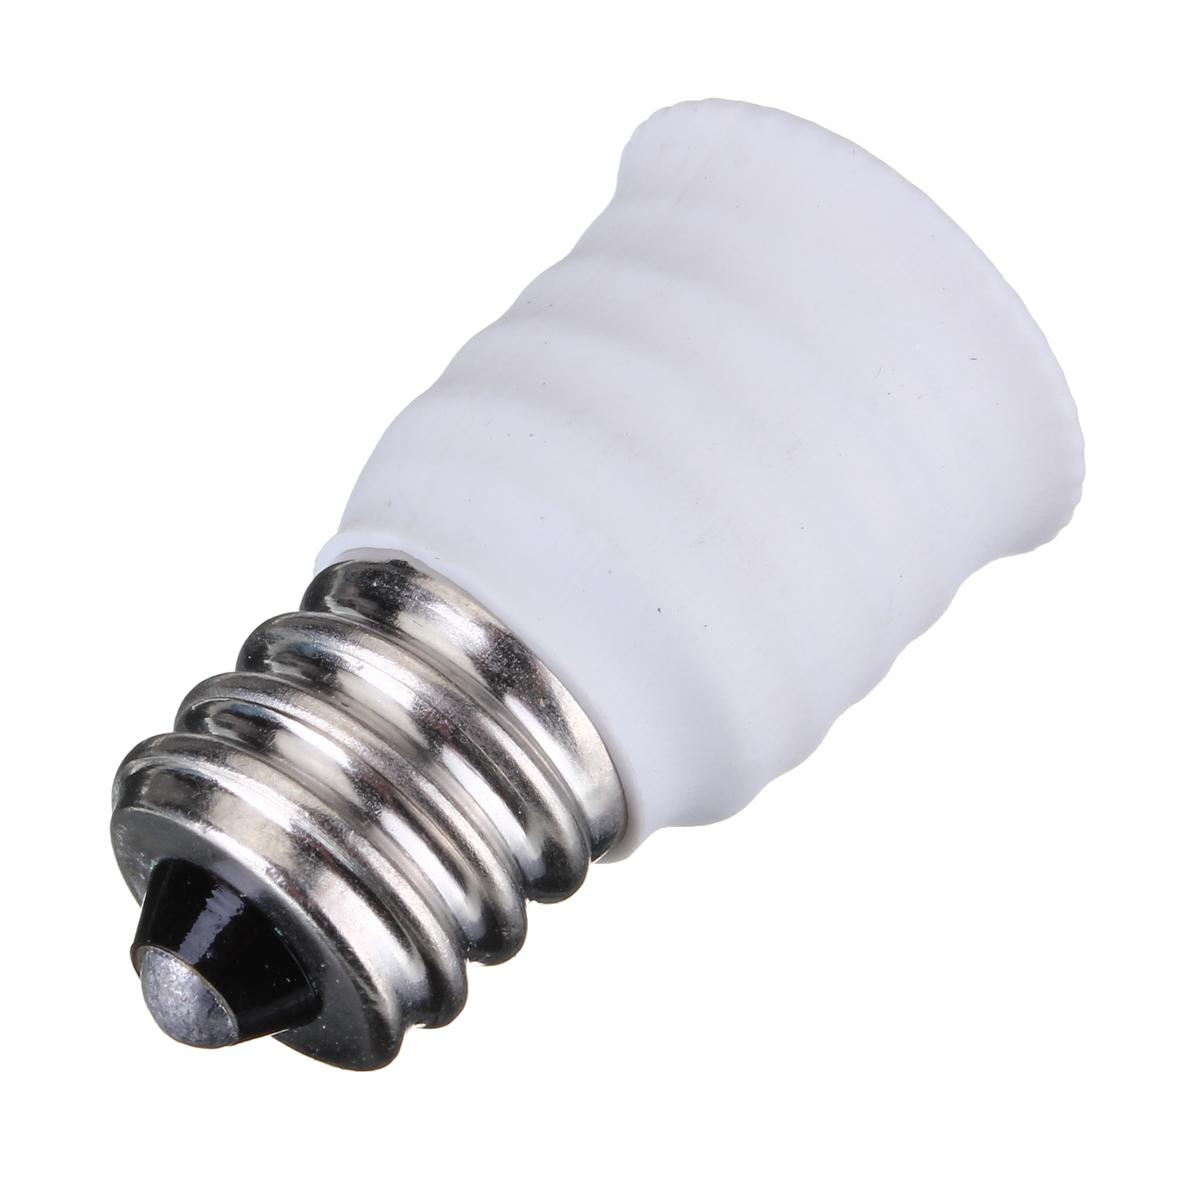 Conversion <font><b>Lamp</b></font> Holder Adapter Converter E12 To <font><b>E14</b></font> <font><b>Lamp</b></font> Base <font><b>Socket</b></font> For LED Halogen CFL Light Bulb Black White image